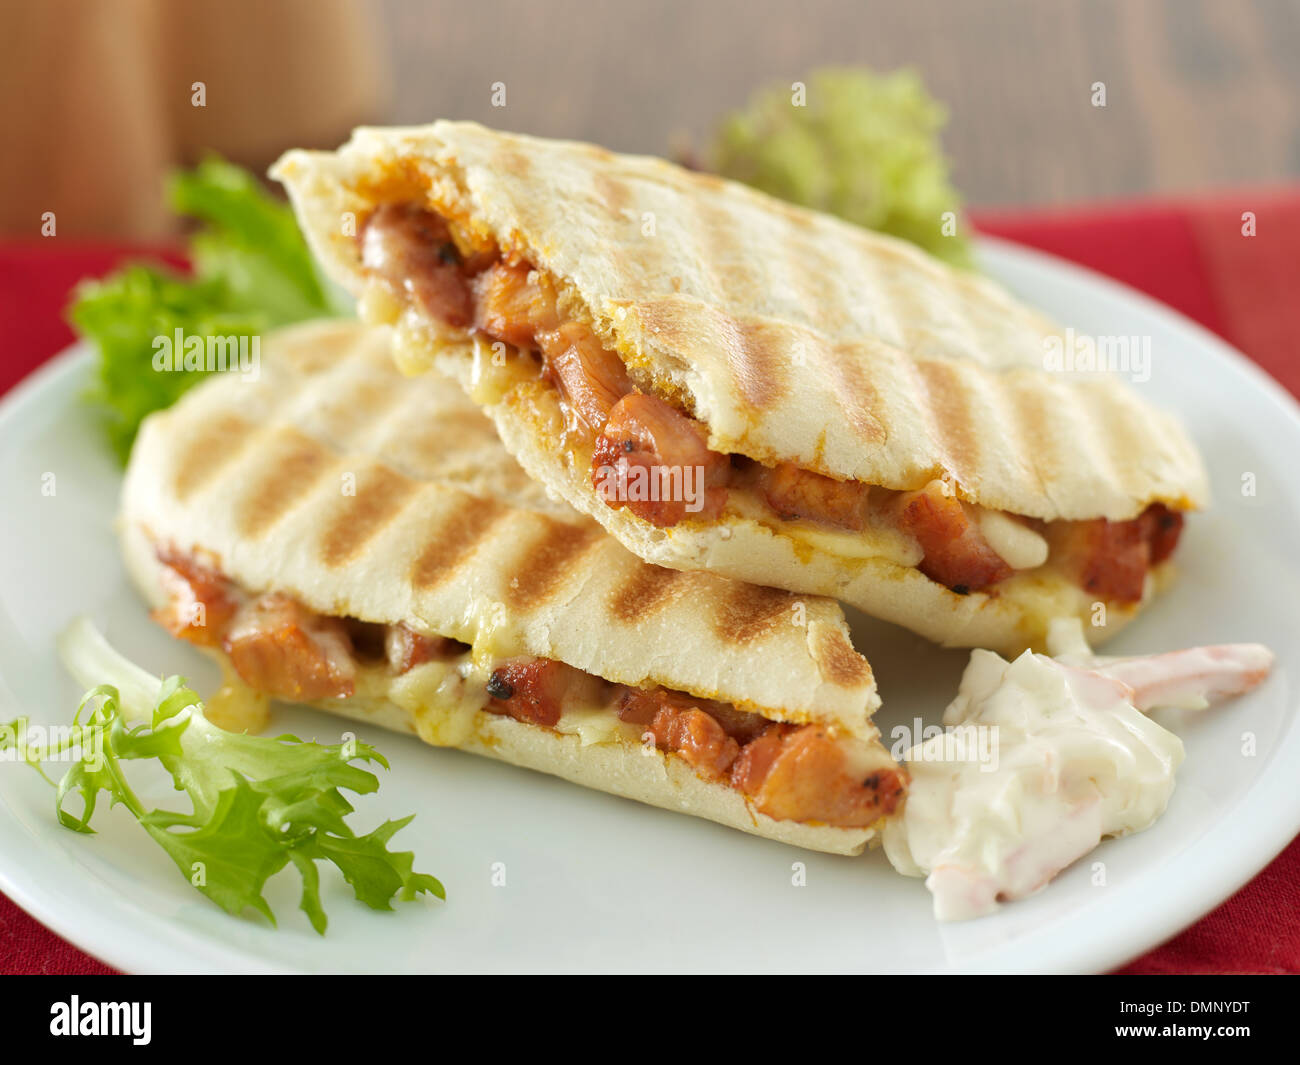 food fried chicken and cheese panini and coleslaw sandwich - Stock Image